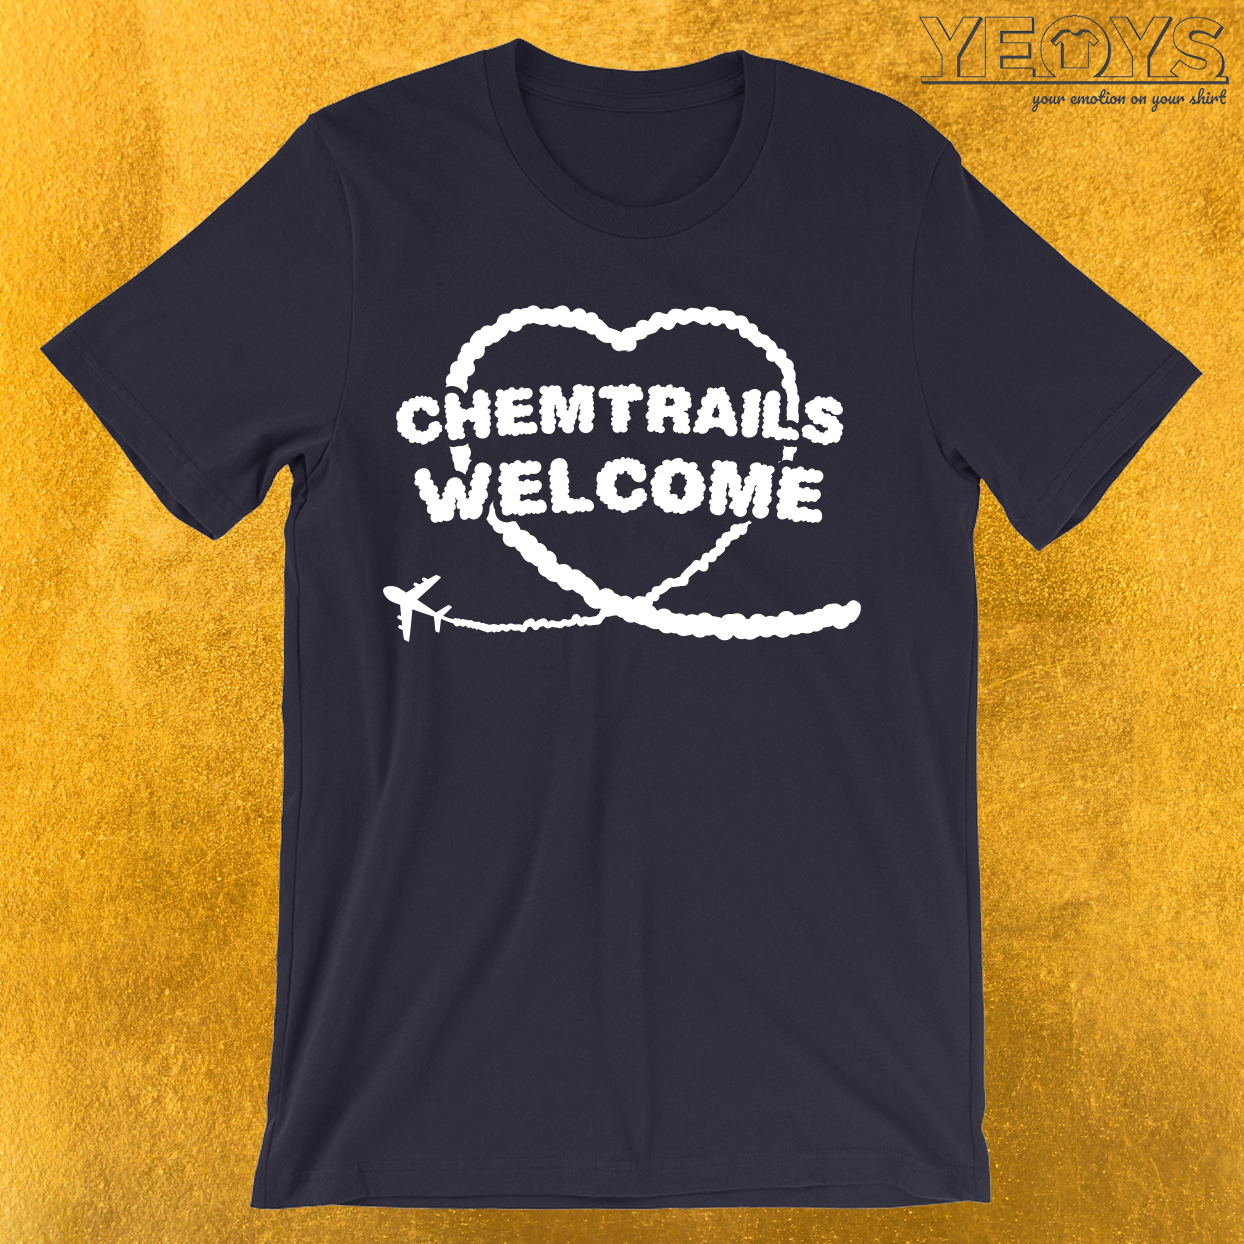 Chemtrails Welcome T-Shirt